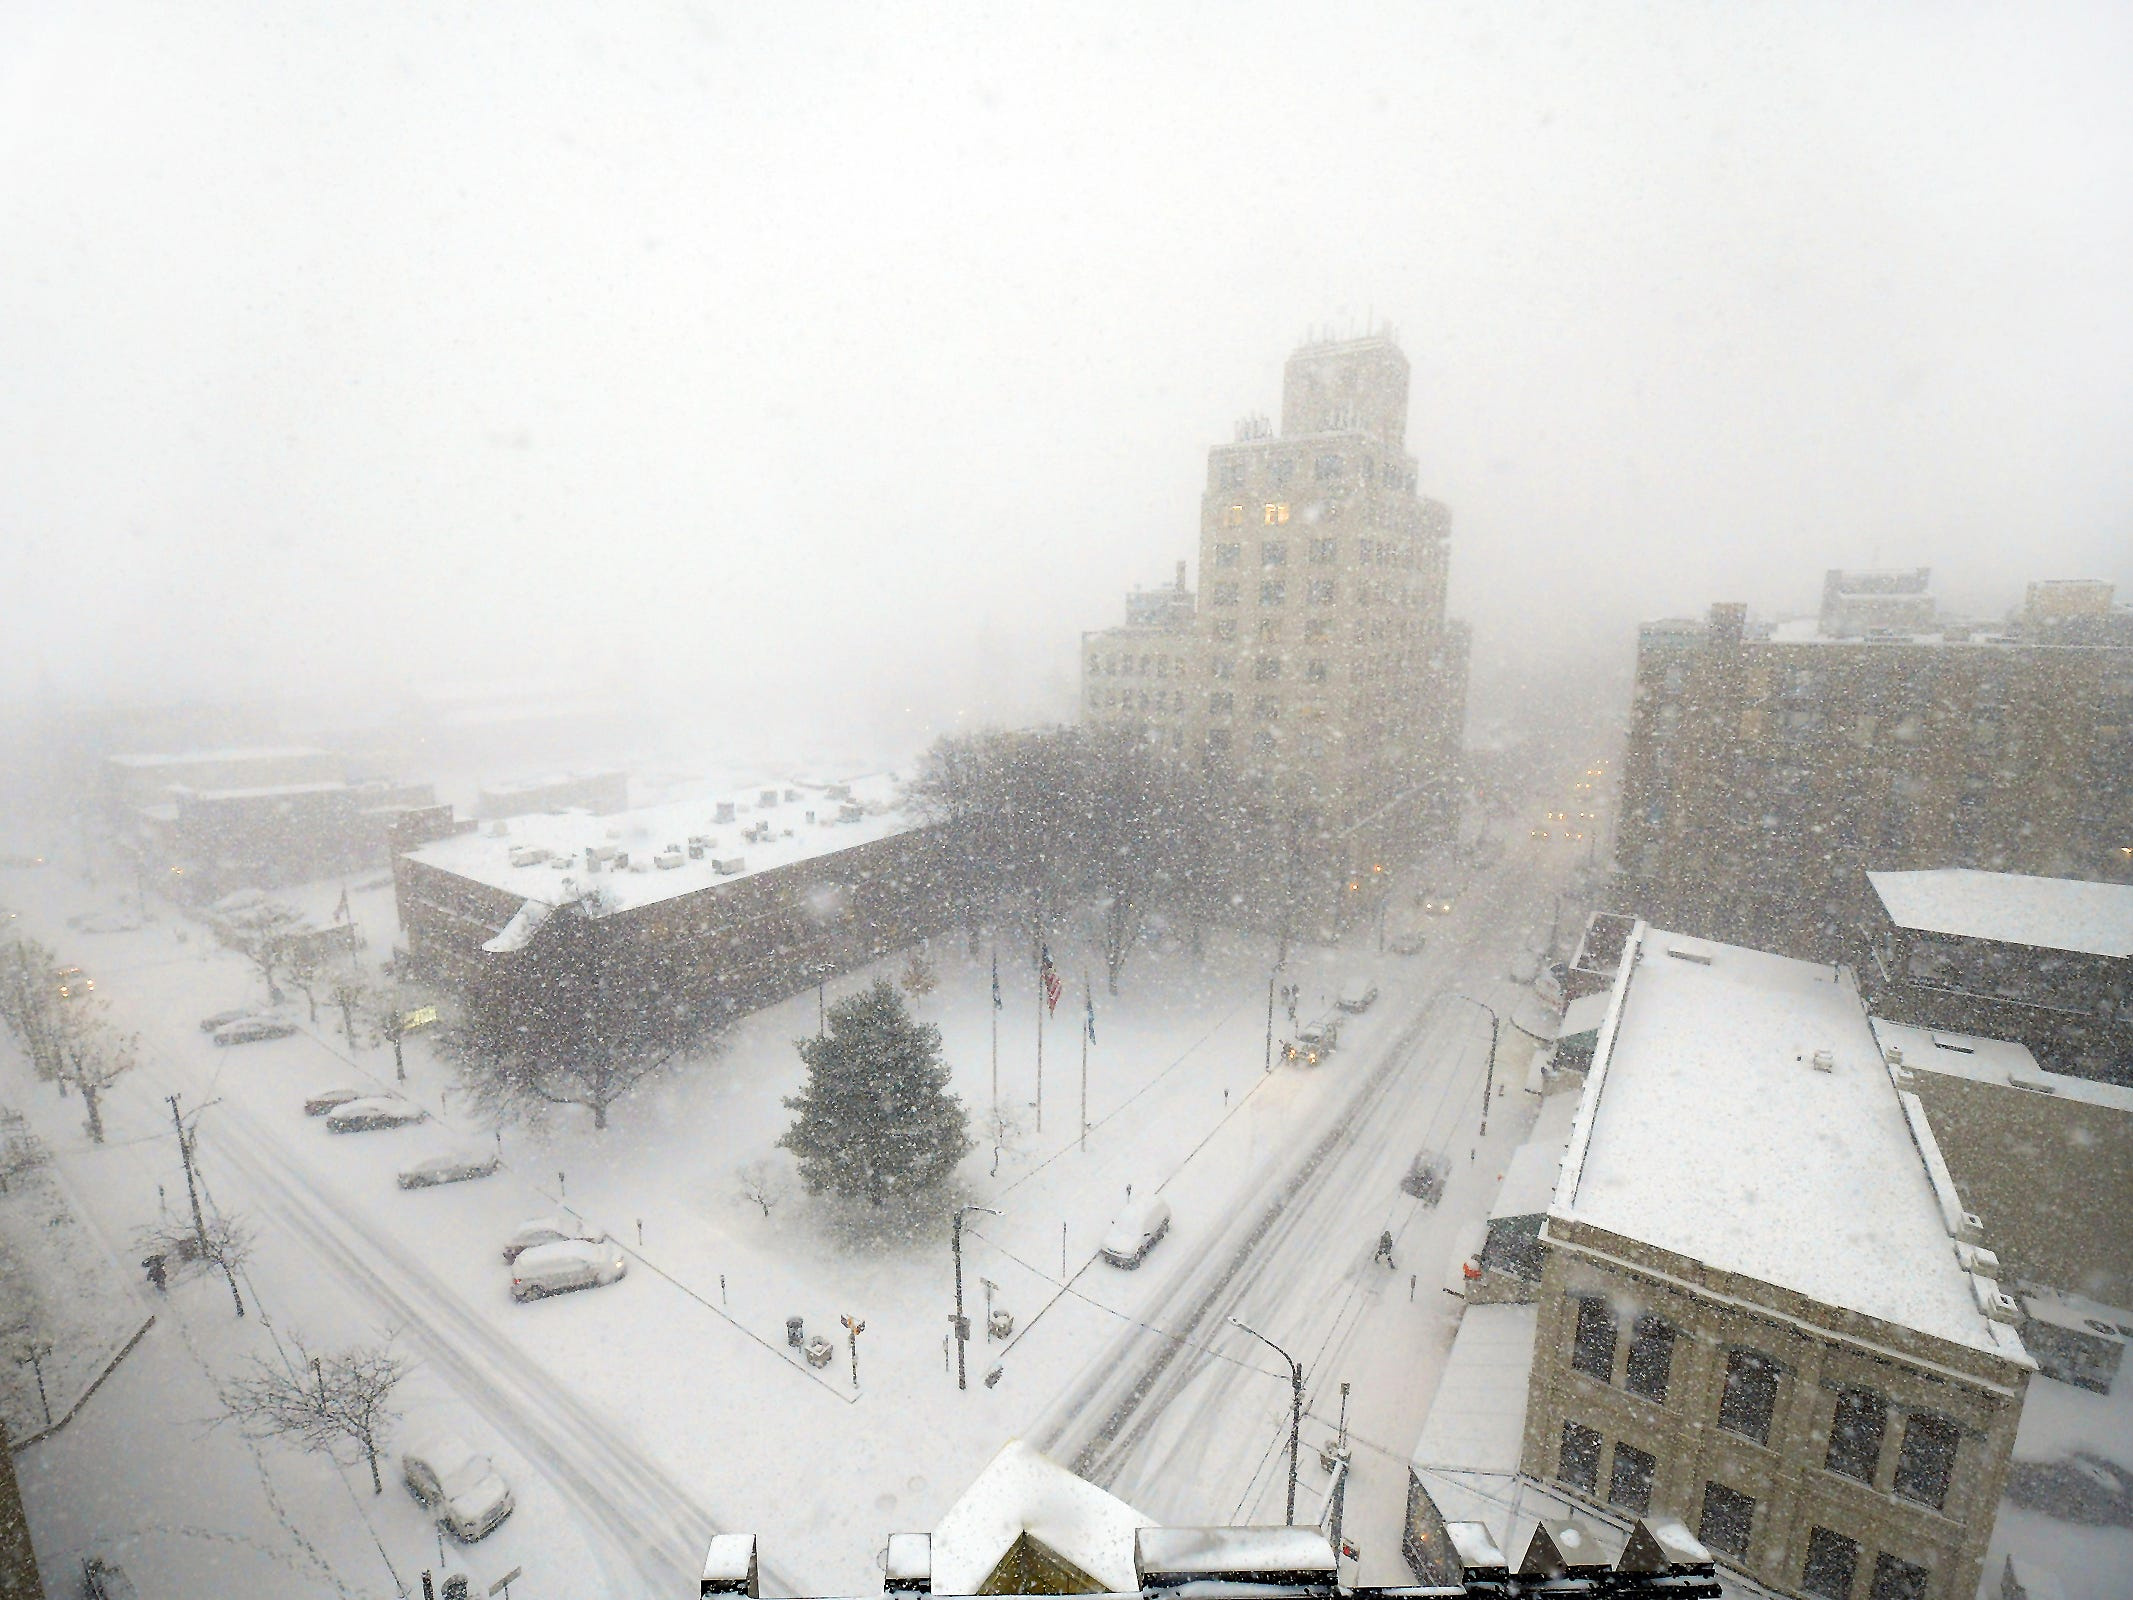 An autumn snow storm caused a white-out in downtown Scranton, Pa., on Nov. 15, 2018.